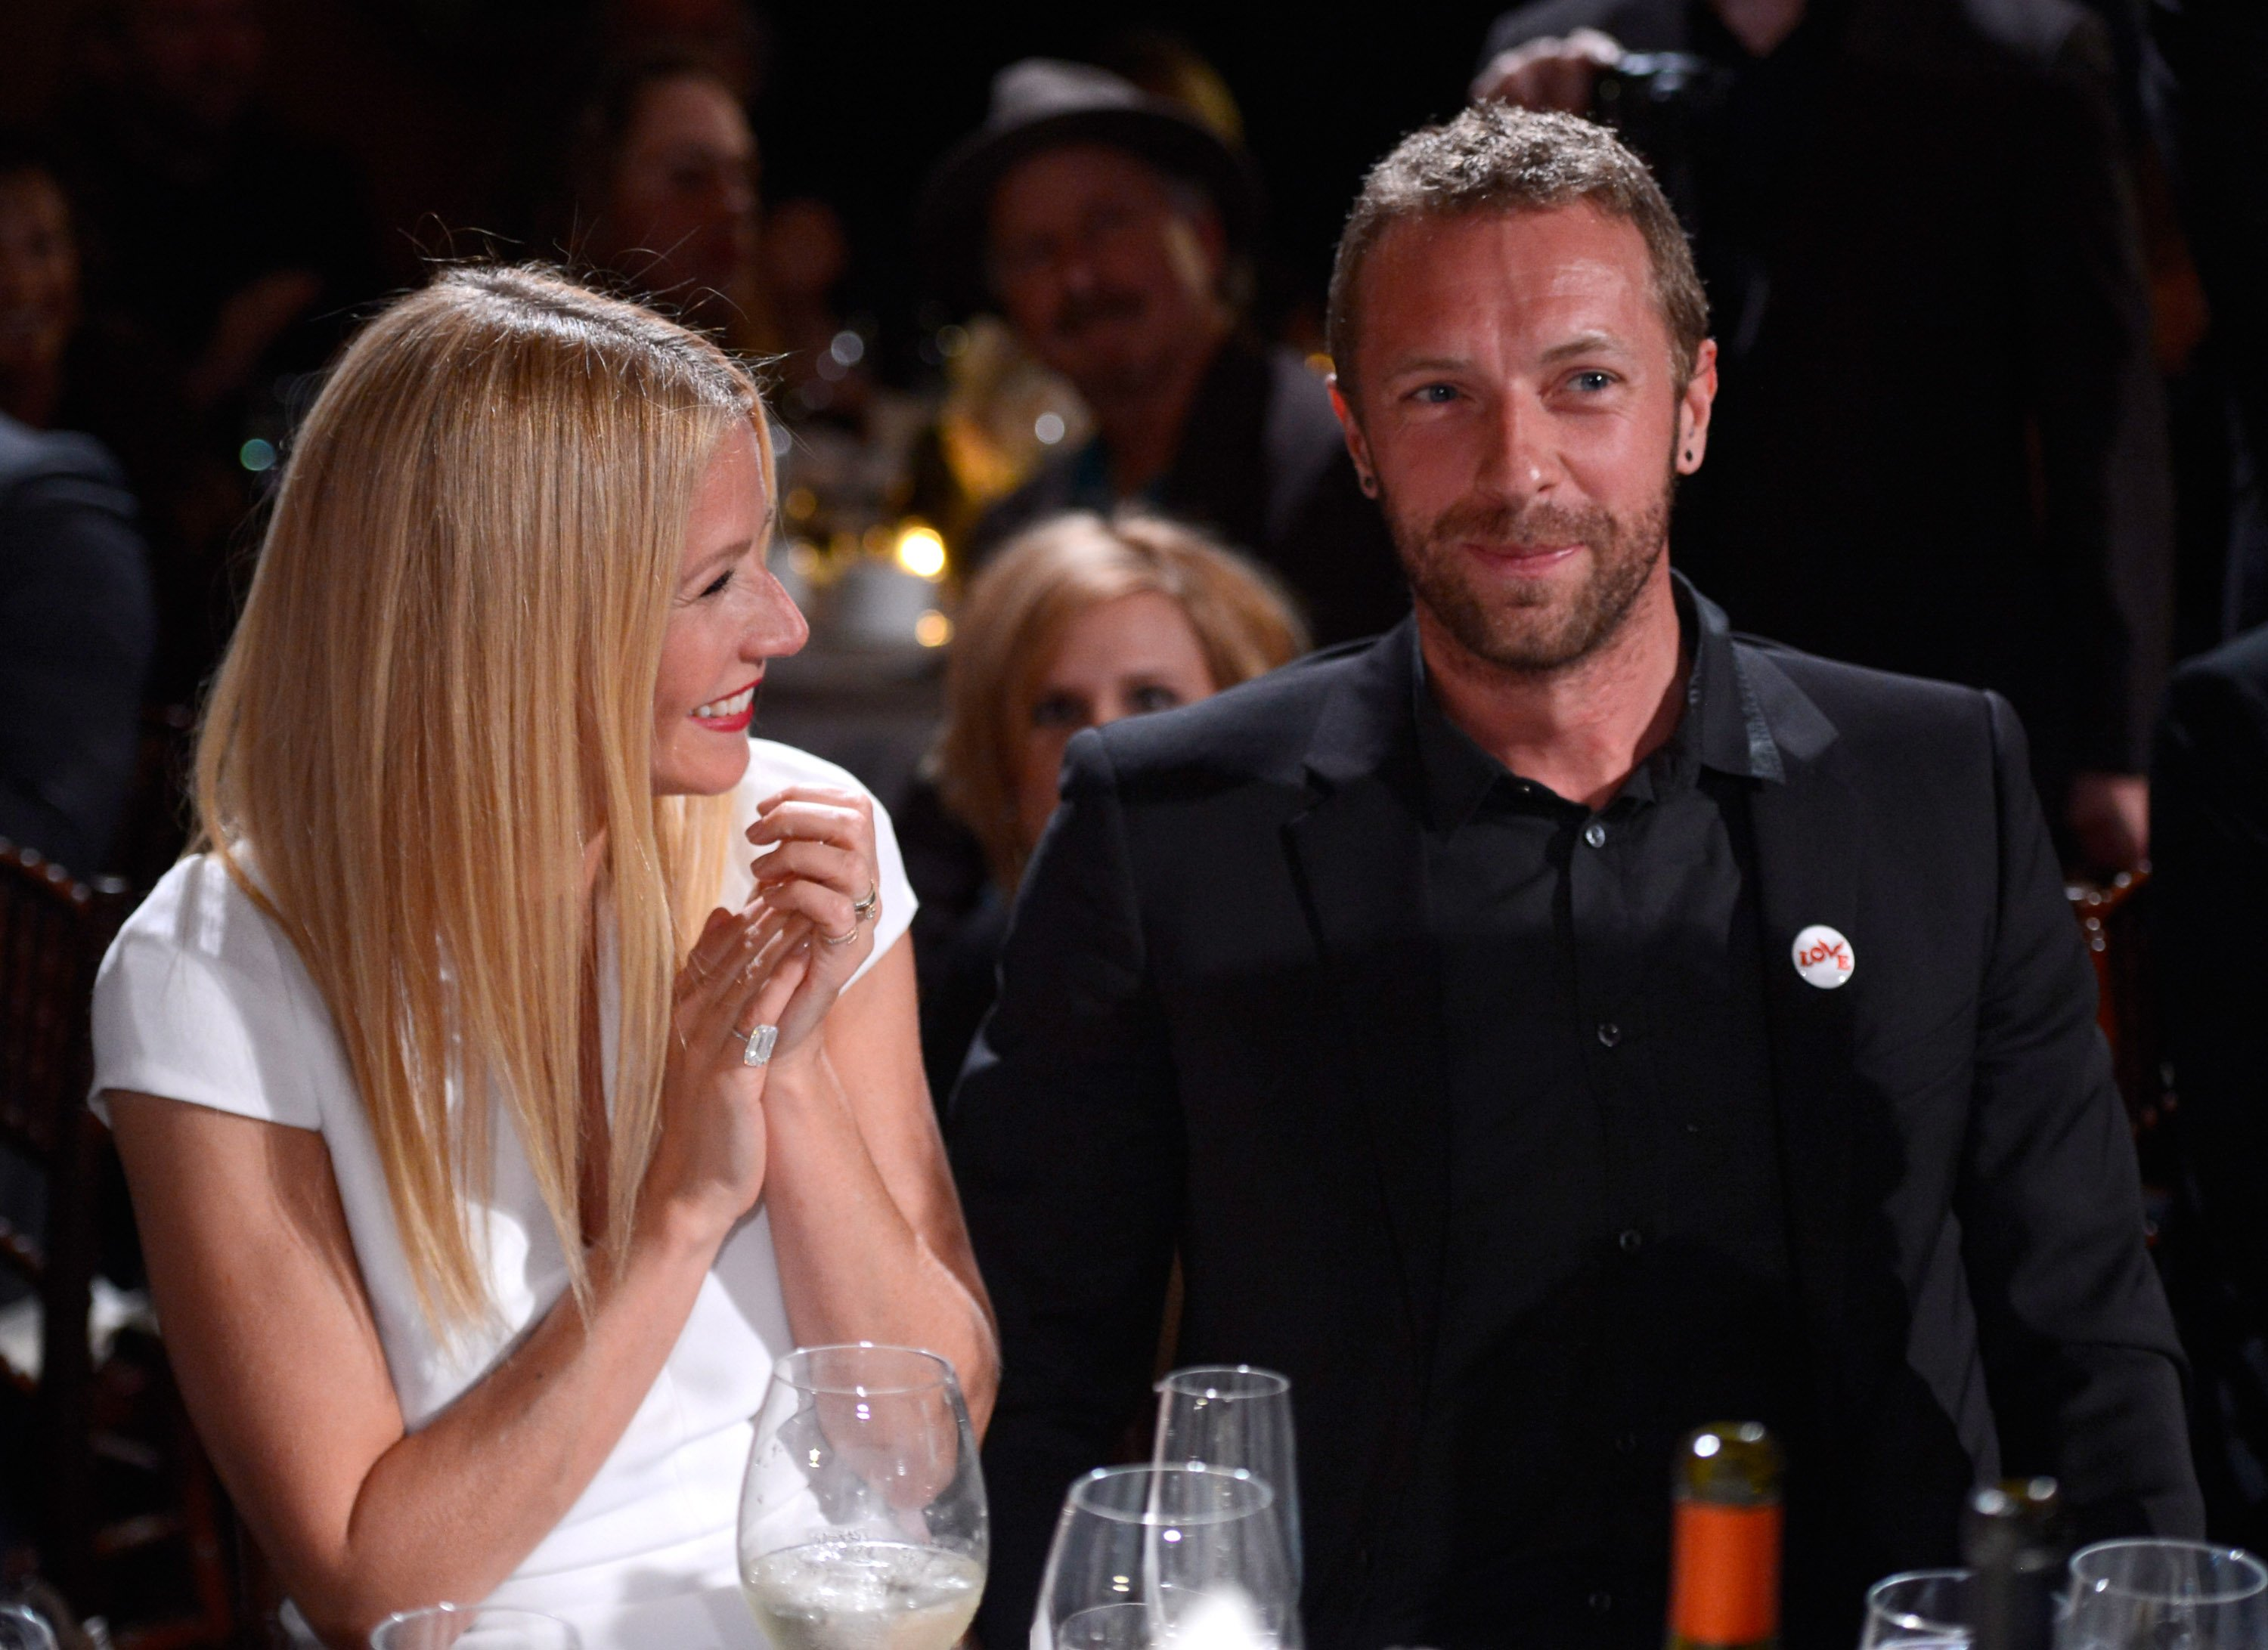 Image Credits: Getty Images / Kevin Mazur | Gwyneth Paltrow and Chris Martin attend the 3rd annual Sean Penn & Friends HELP HAITI HOME Gala benefiting J/P HRO presented by Giorgio Armani at Montage Beverly Hills on January 11, 2014 in Beverly Hills, California.